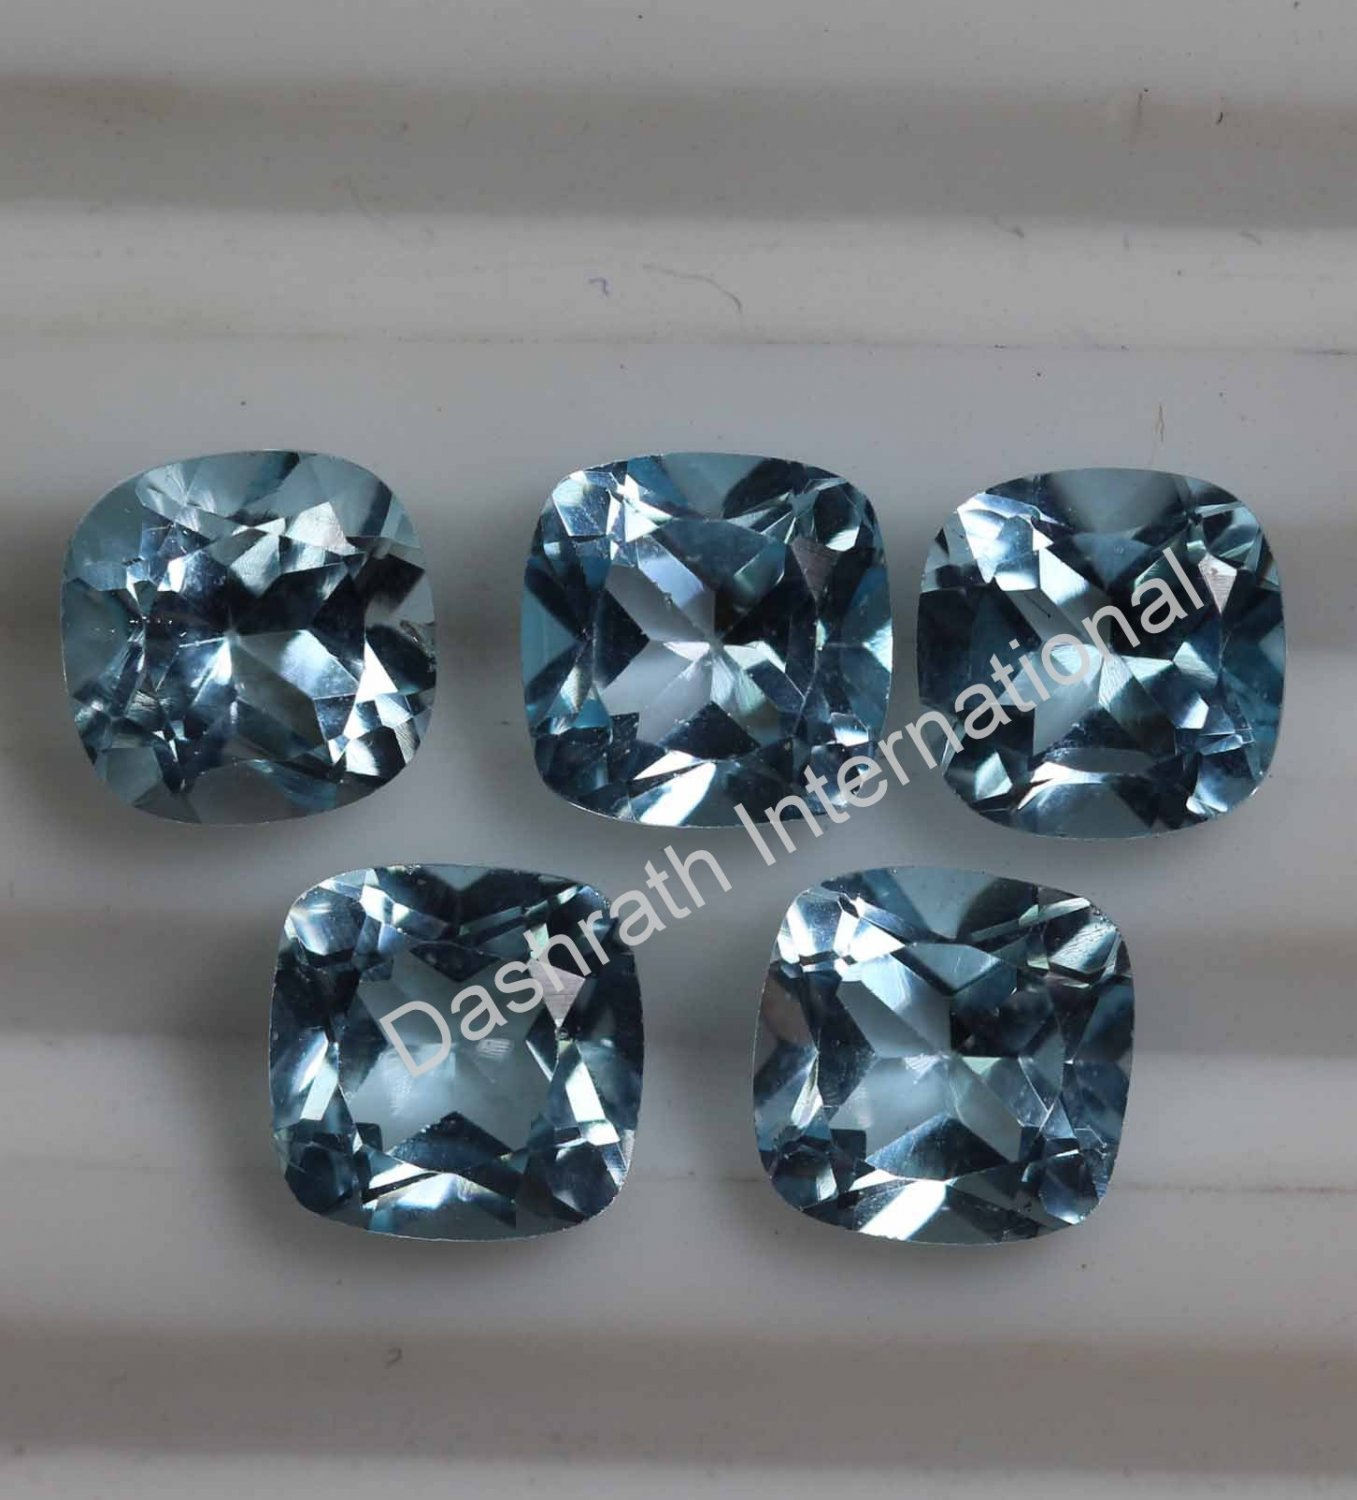 7mm Natural Sky Blue Topaz Faceted Cut Cushion 100 Pieces Lot Top Quality Loose Gemstone